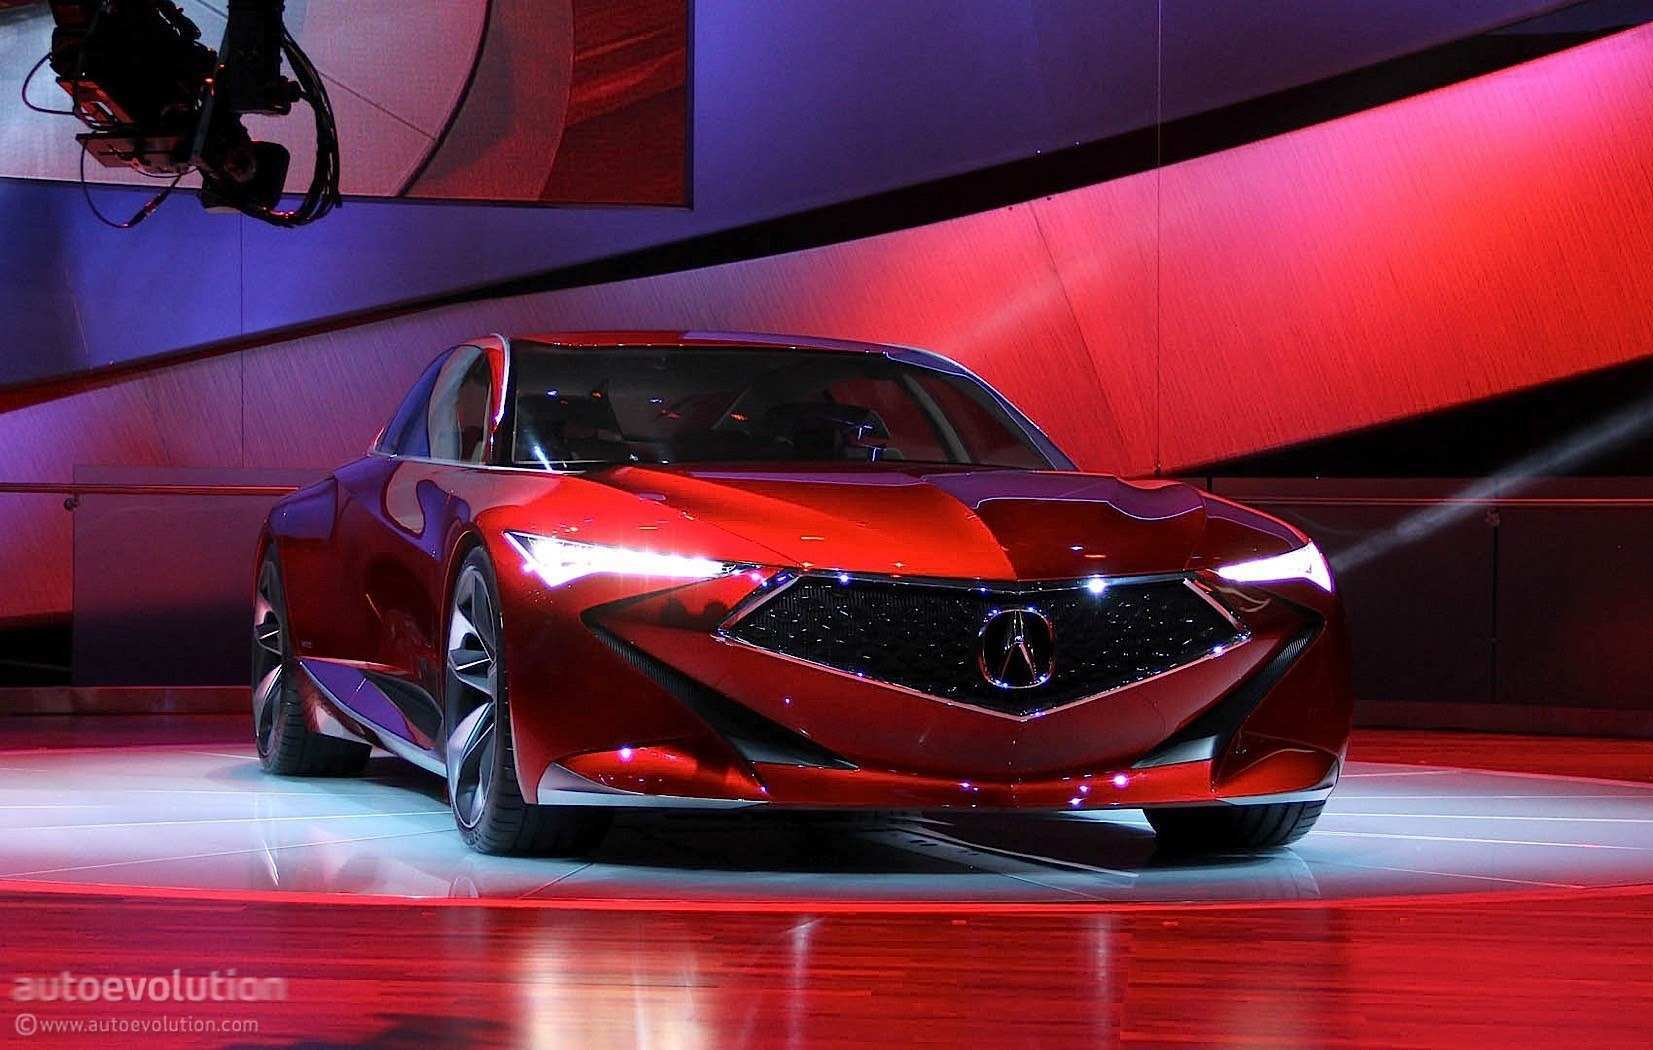 70 New 2020 Acura Ilx Redesign Reviews by 2020 Acura Ilx Redesign